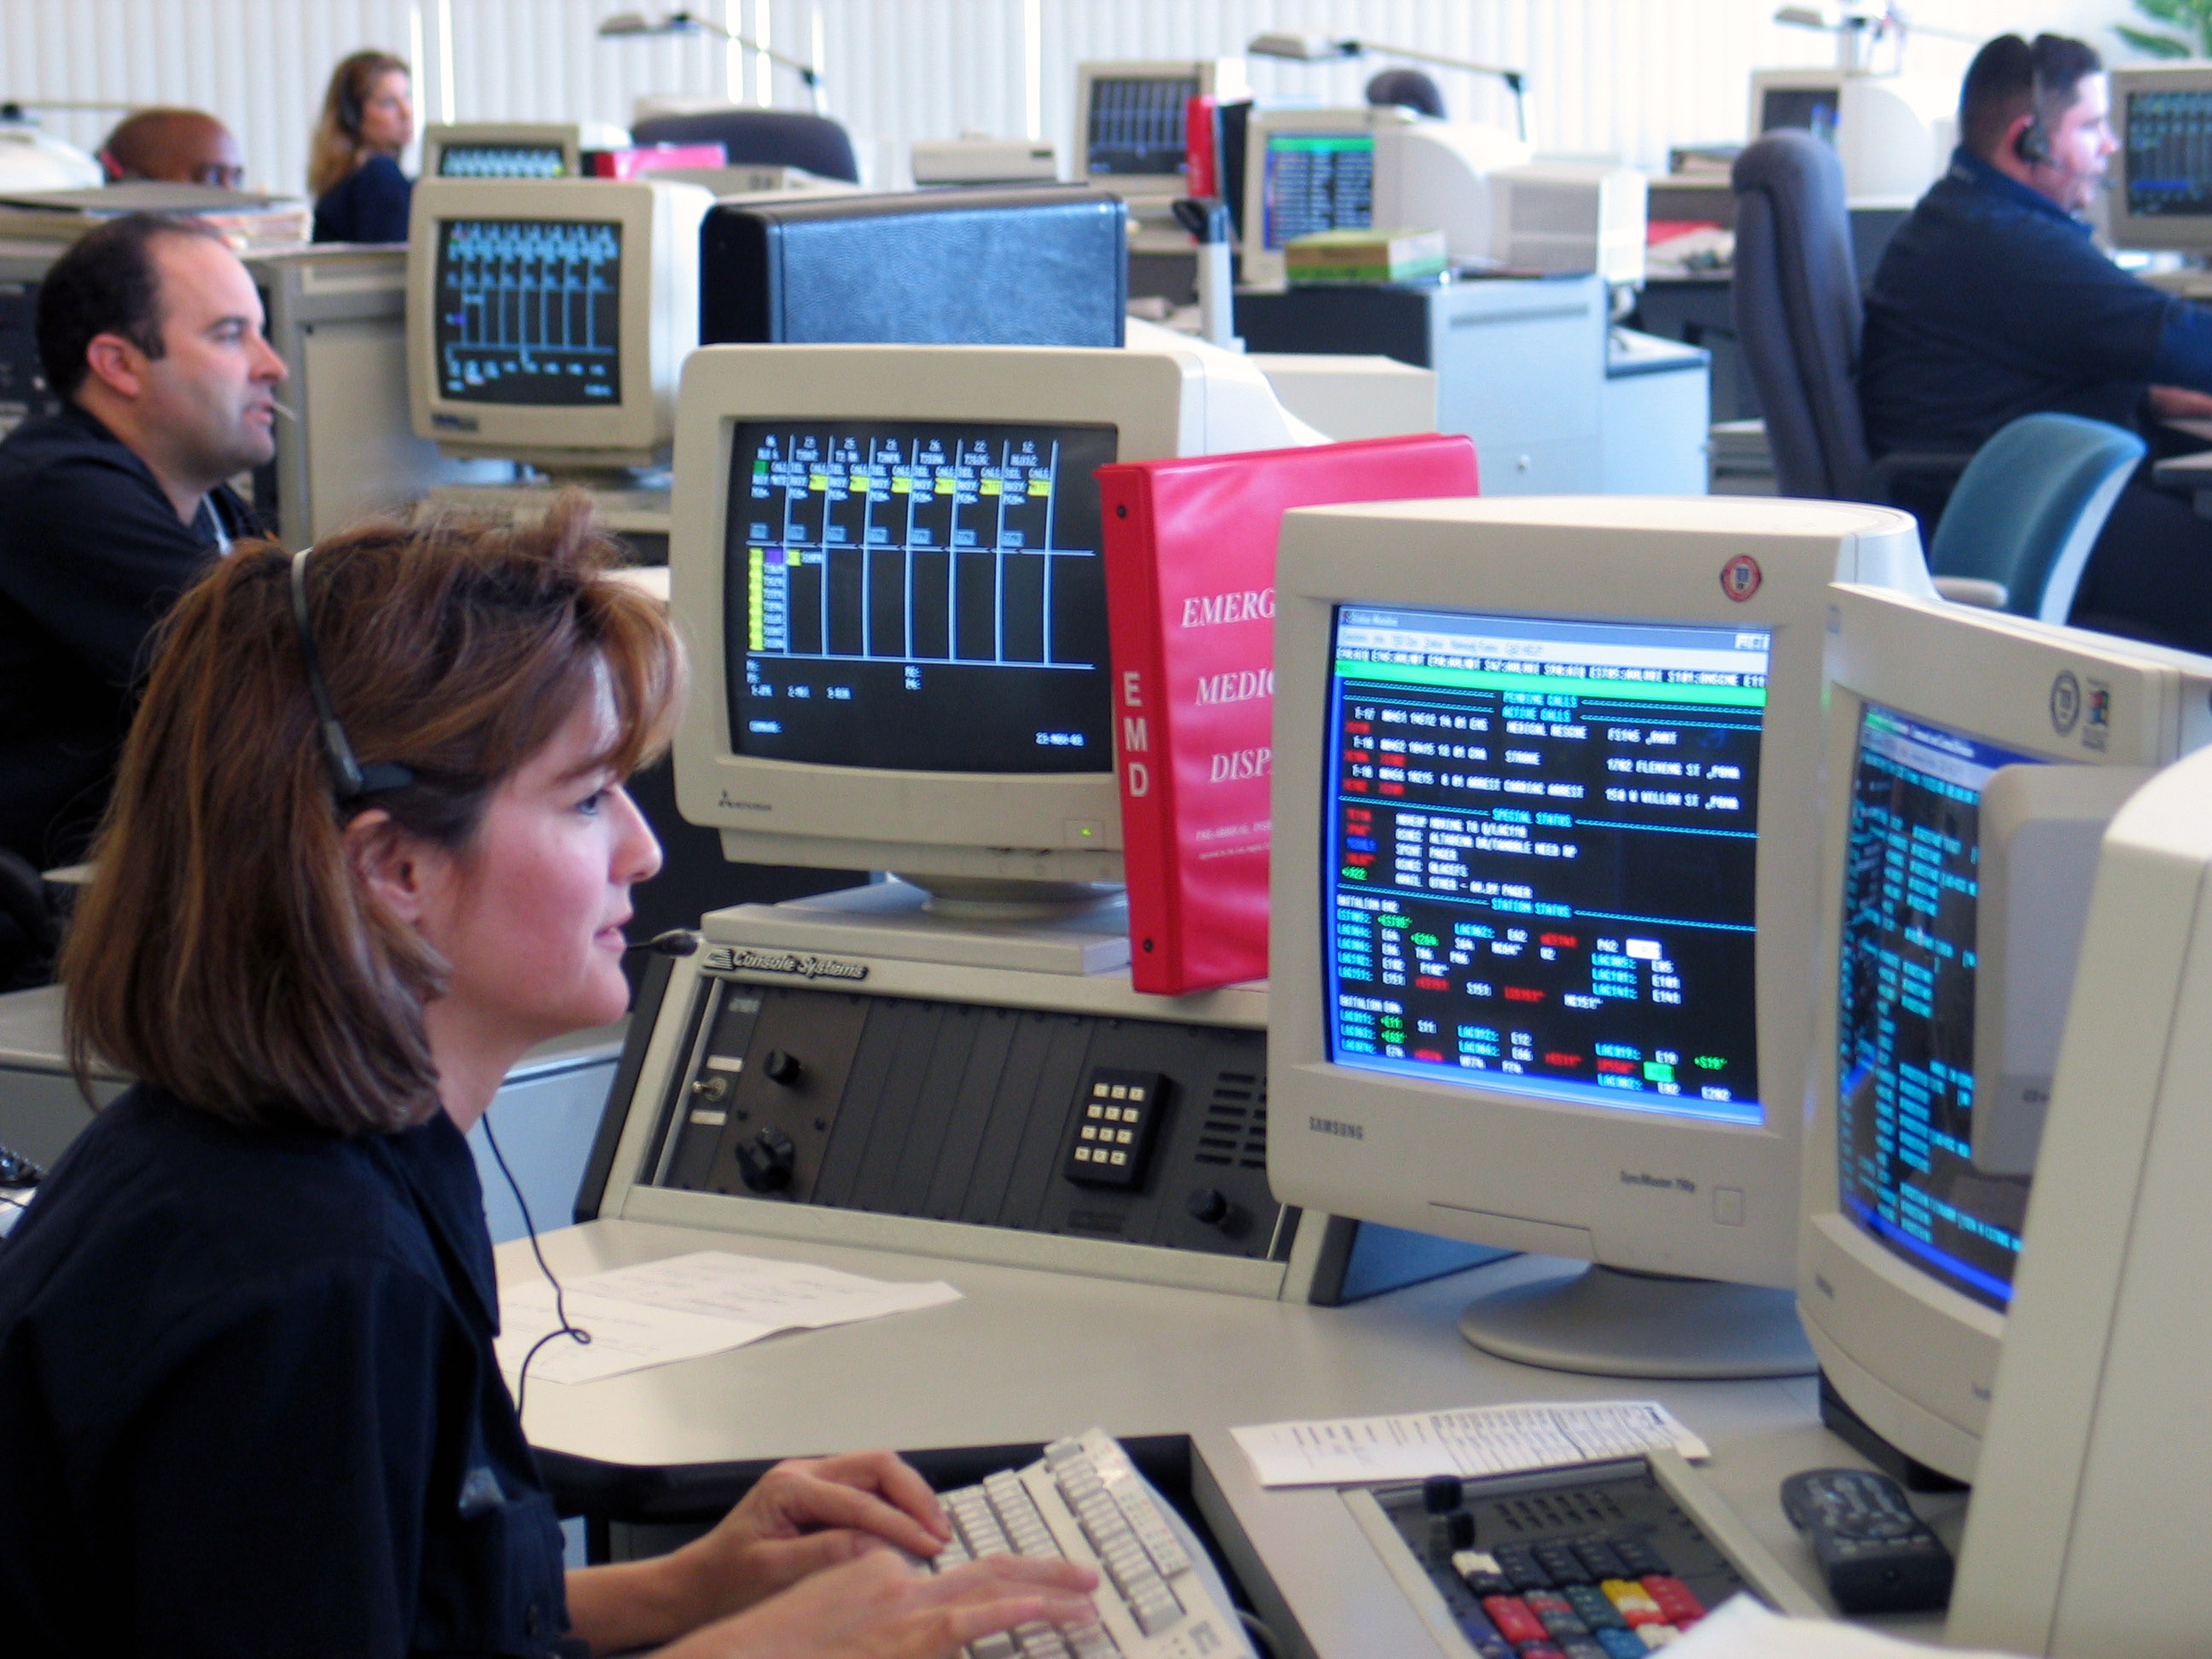 Emergency Medical Dispatch System Puts Help At 911